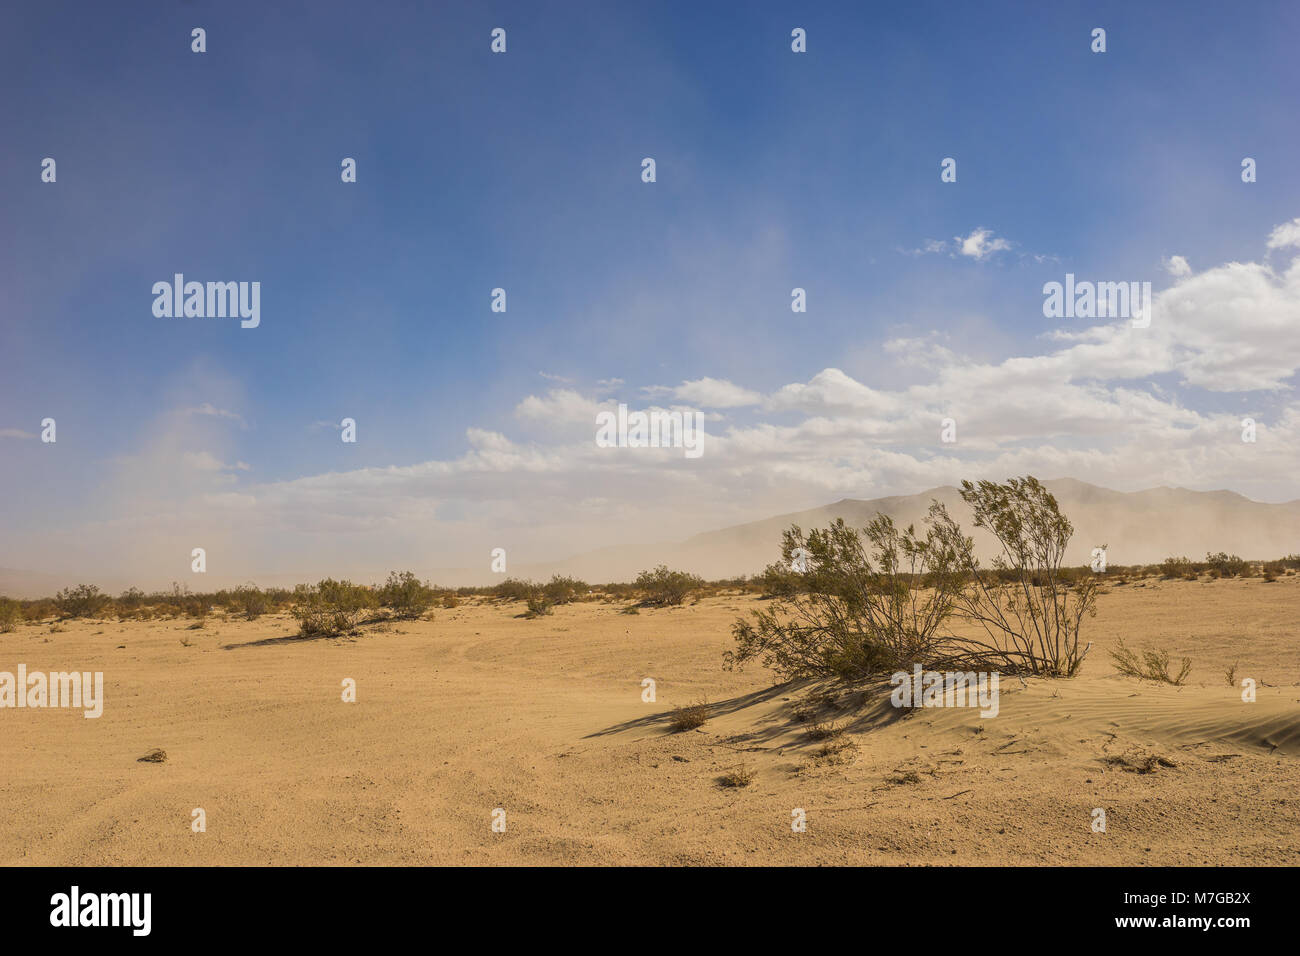 Thin green brush grows in the sand of a massive blowing desert. - Stock Image